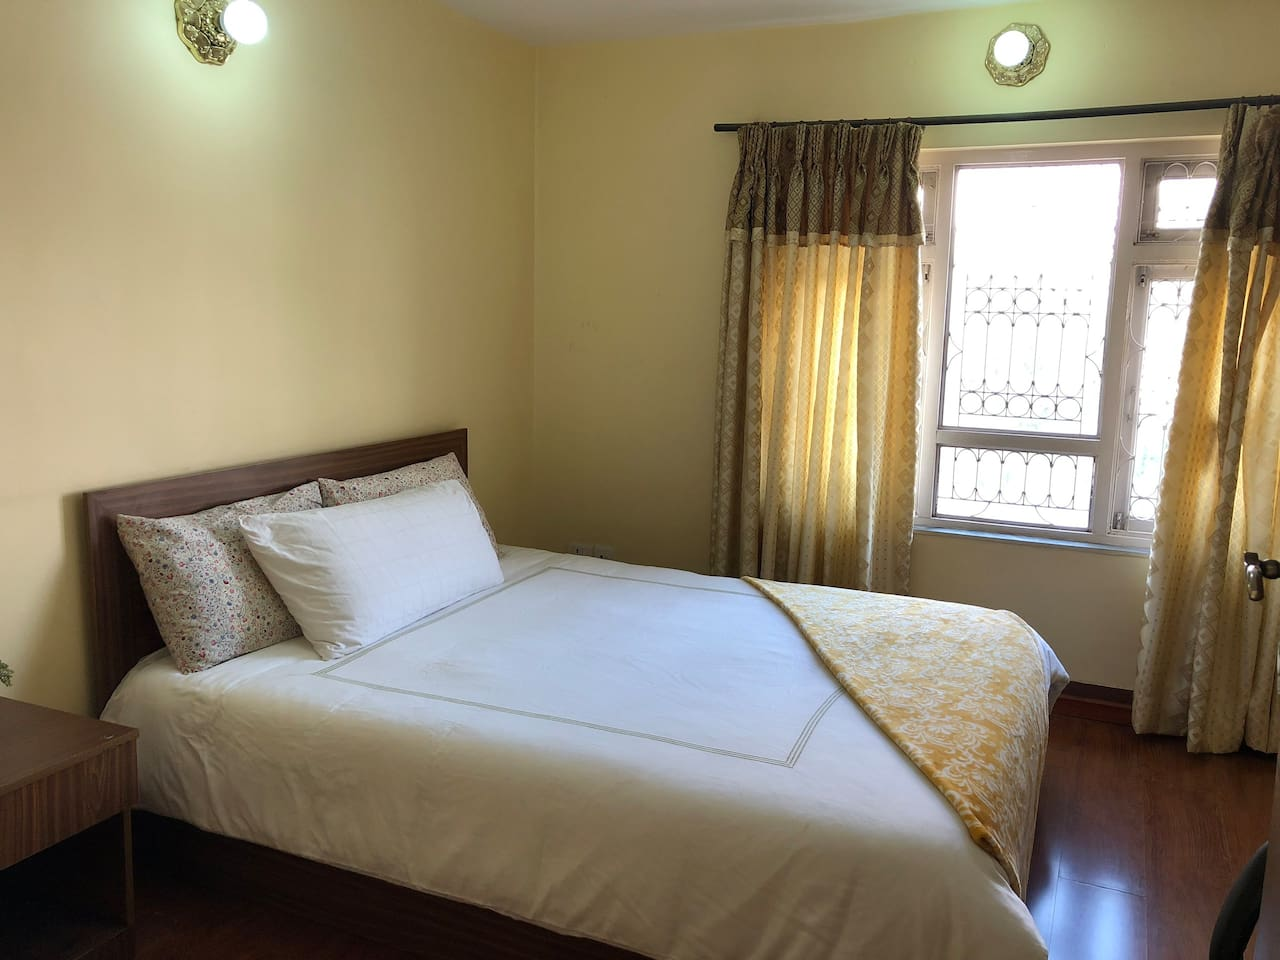 The main bedroom is furnished with a comfortable double bed, nightstand and roomy armoire.